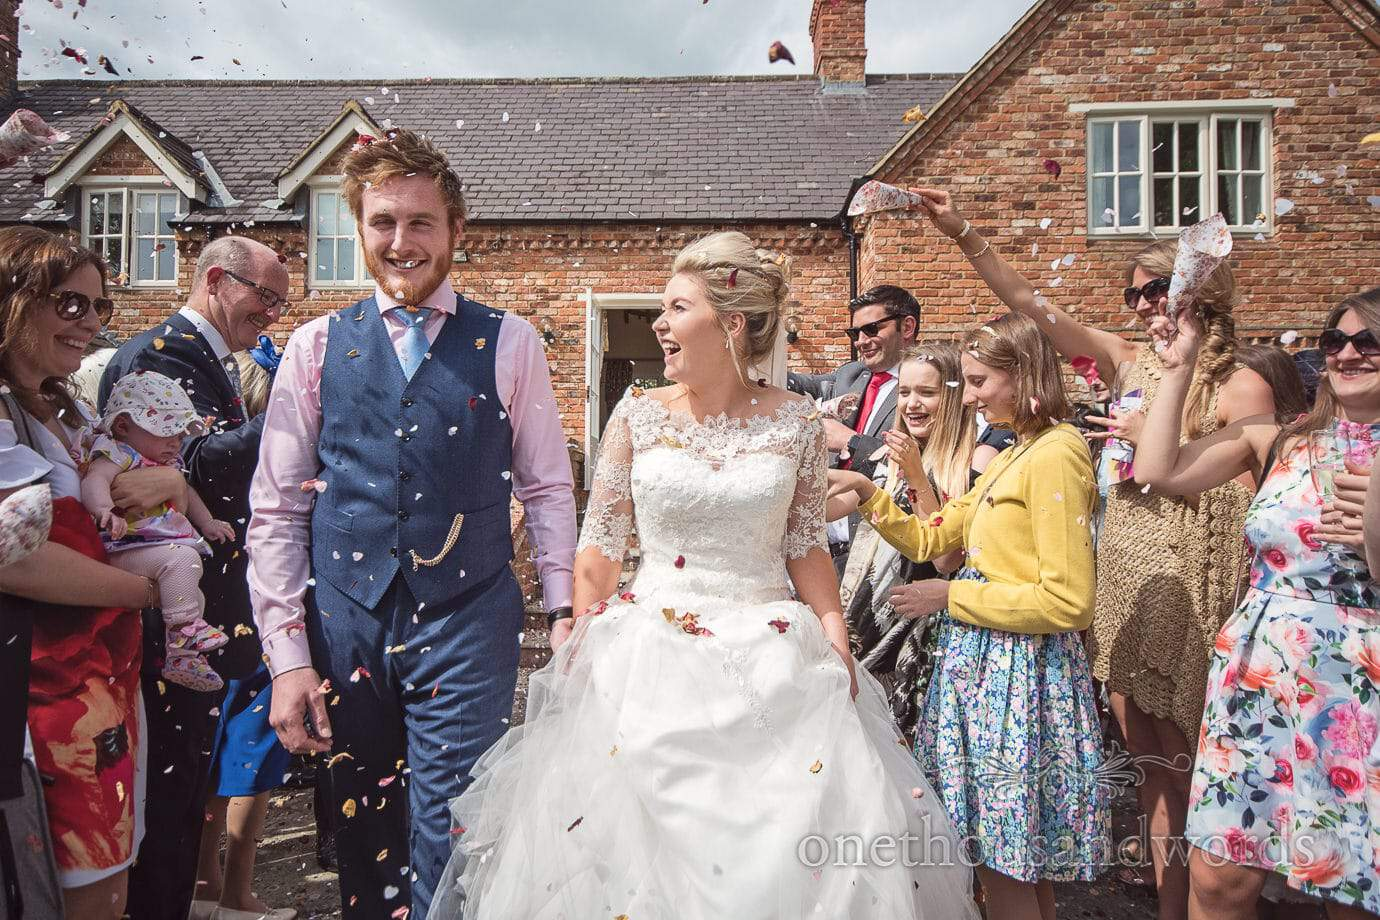 Wedding confetti photograph at country house wedding in Leicestershire